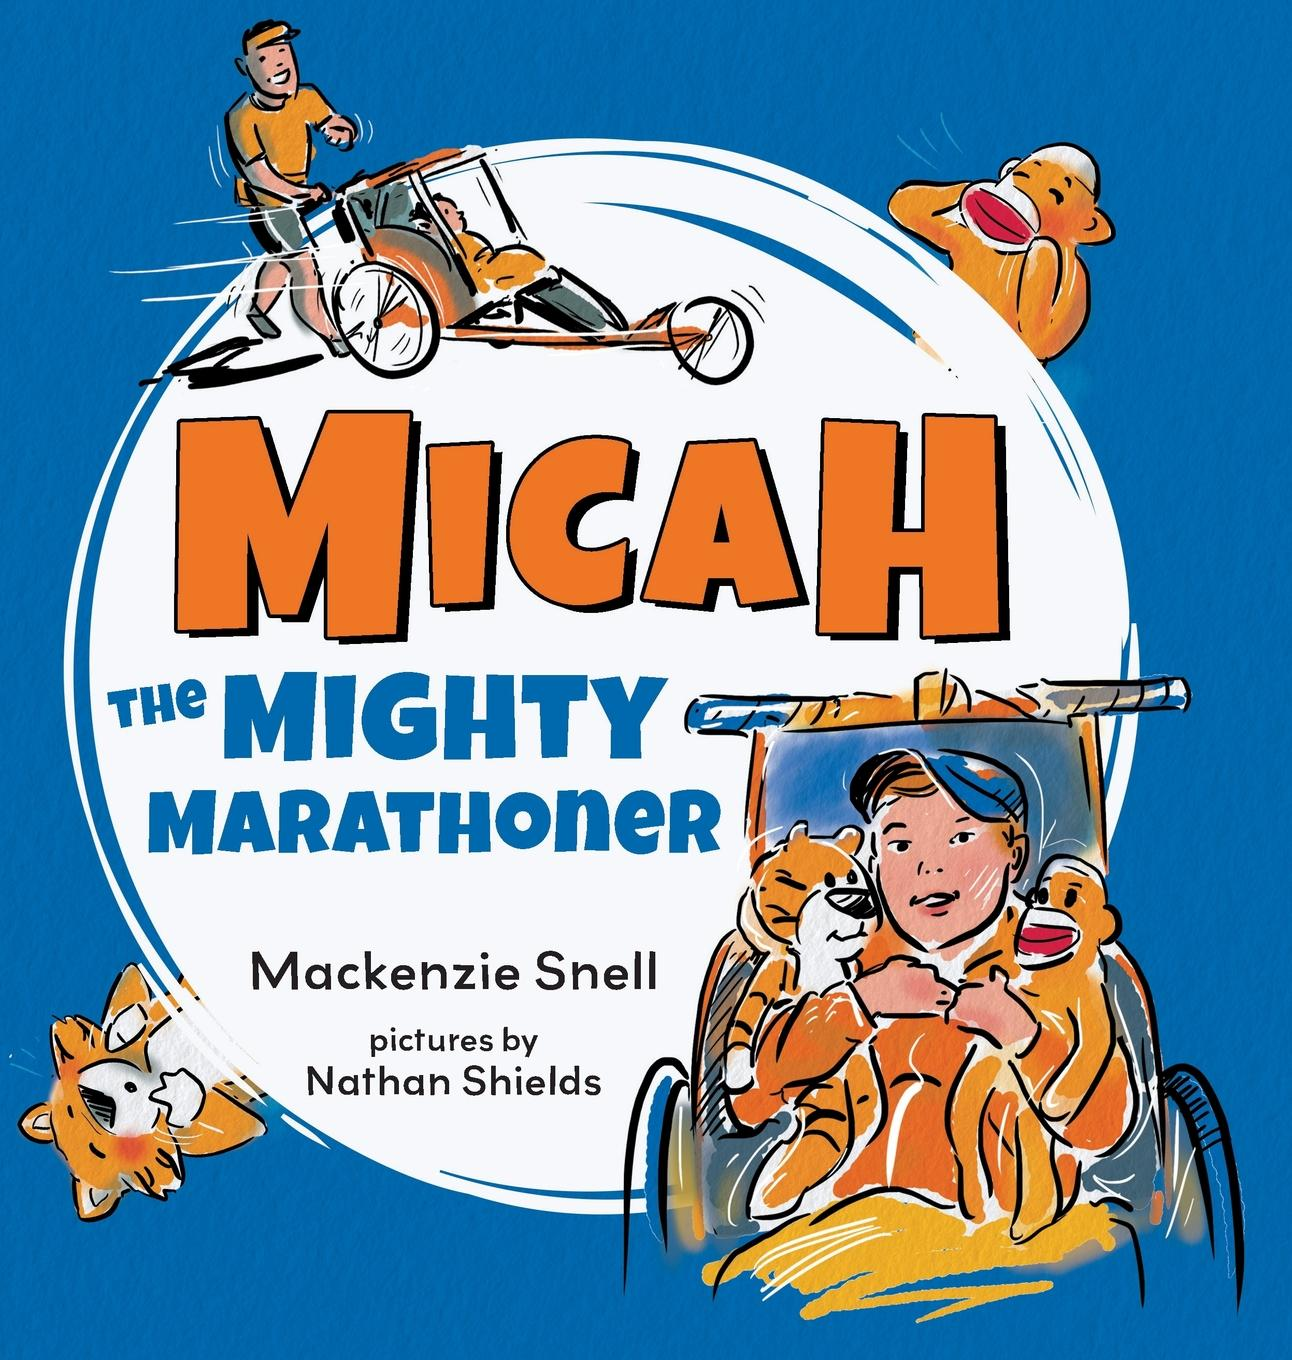 Mighty Micah the Marathoner (Hardcover)